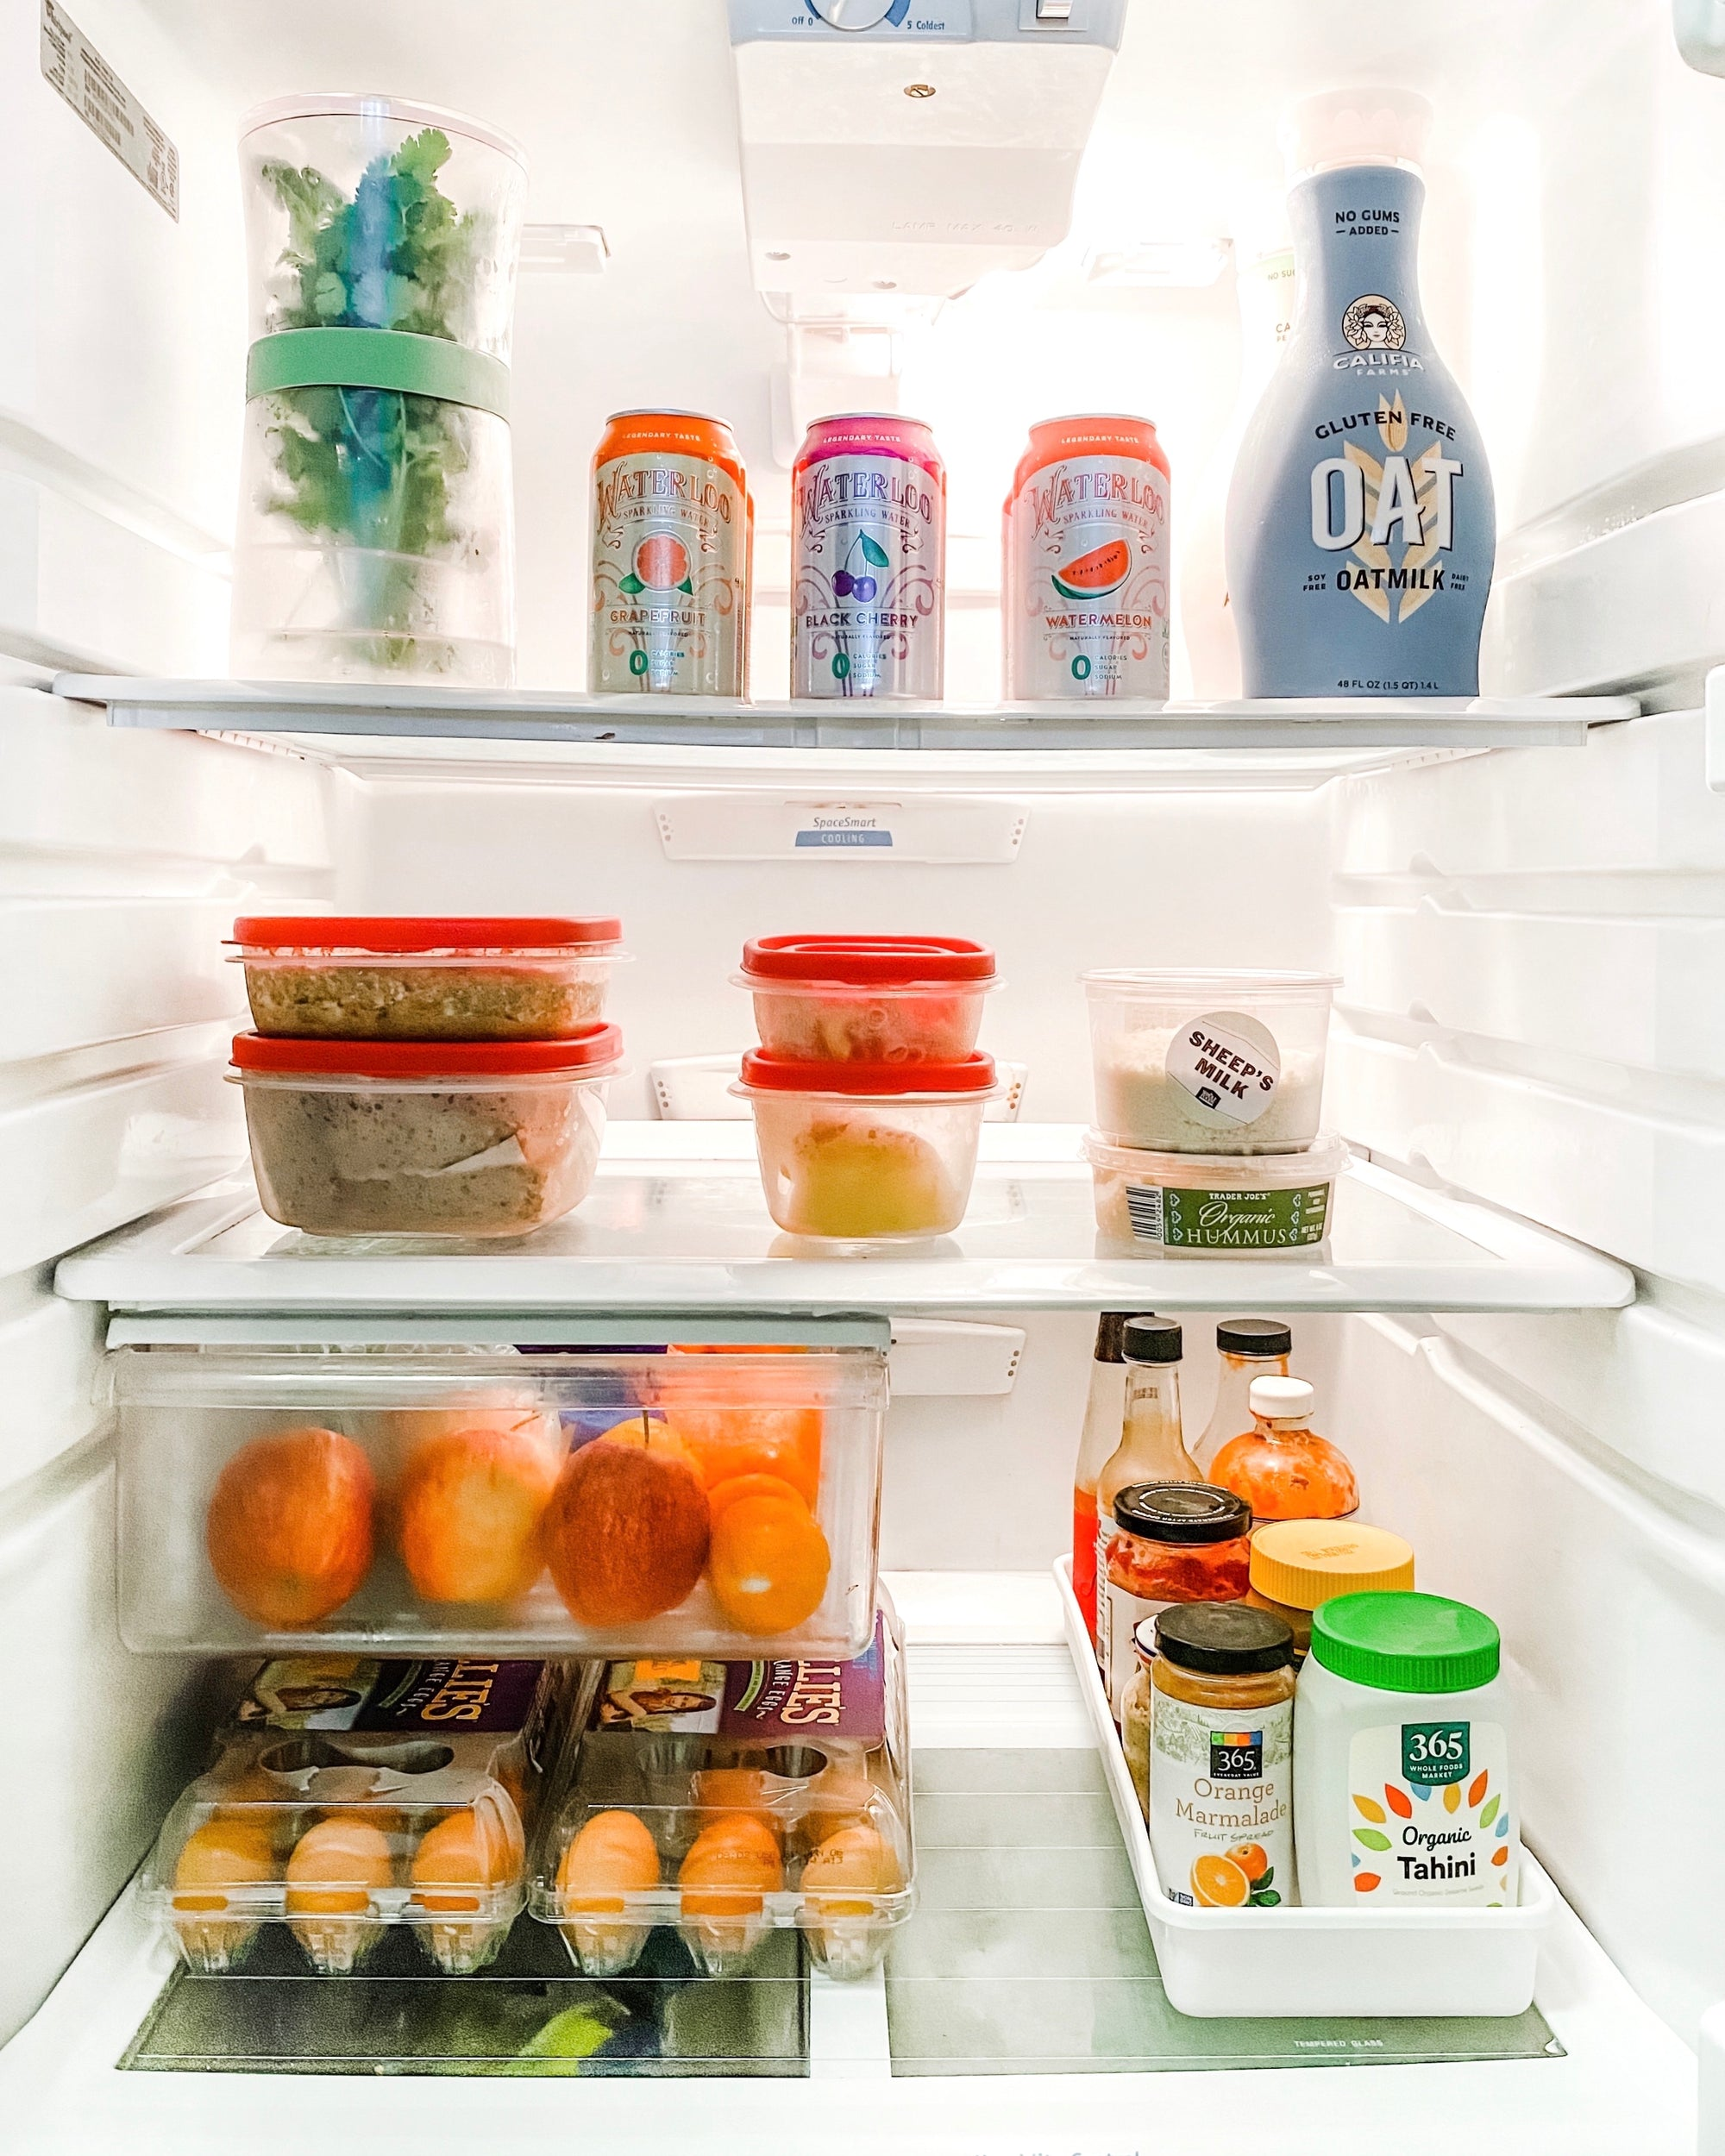 How to Maintain an Organized Refrigerator - tidyspot Blog Post